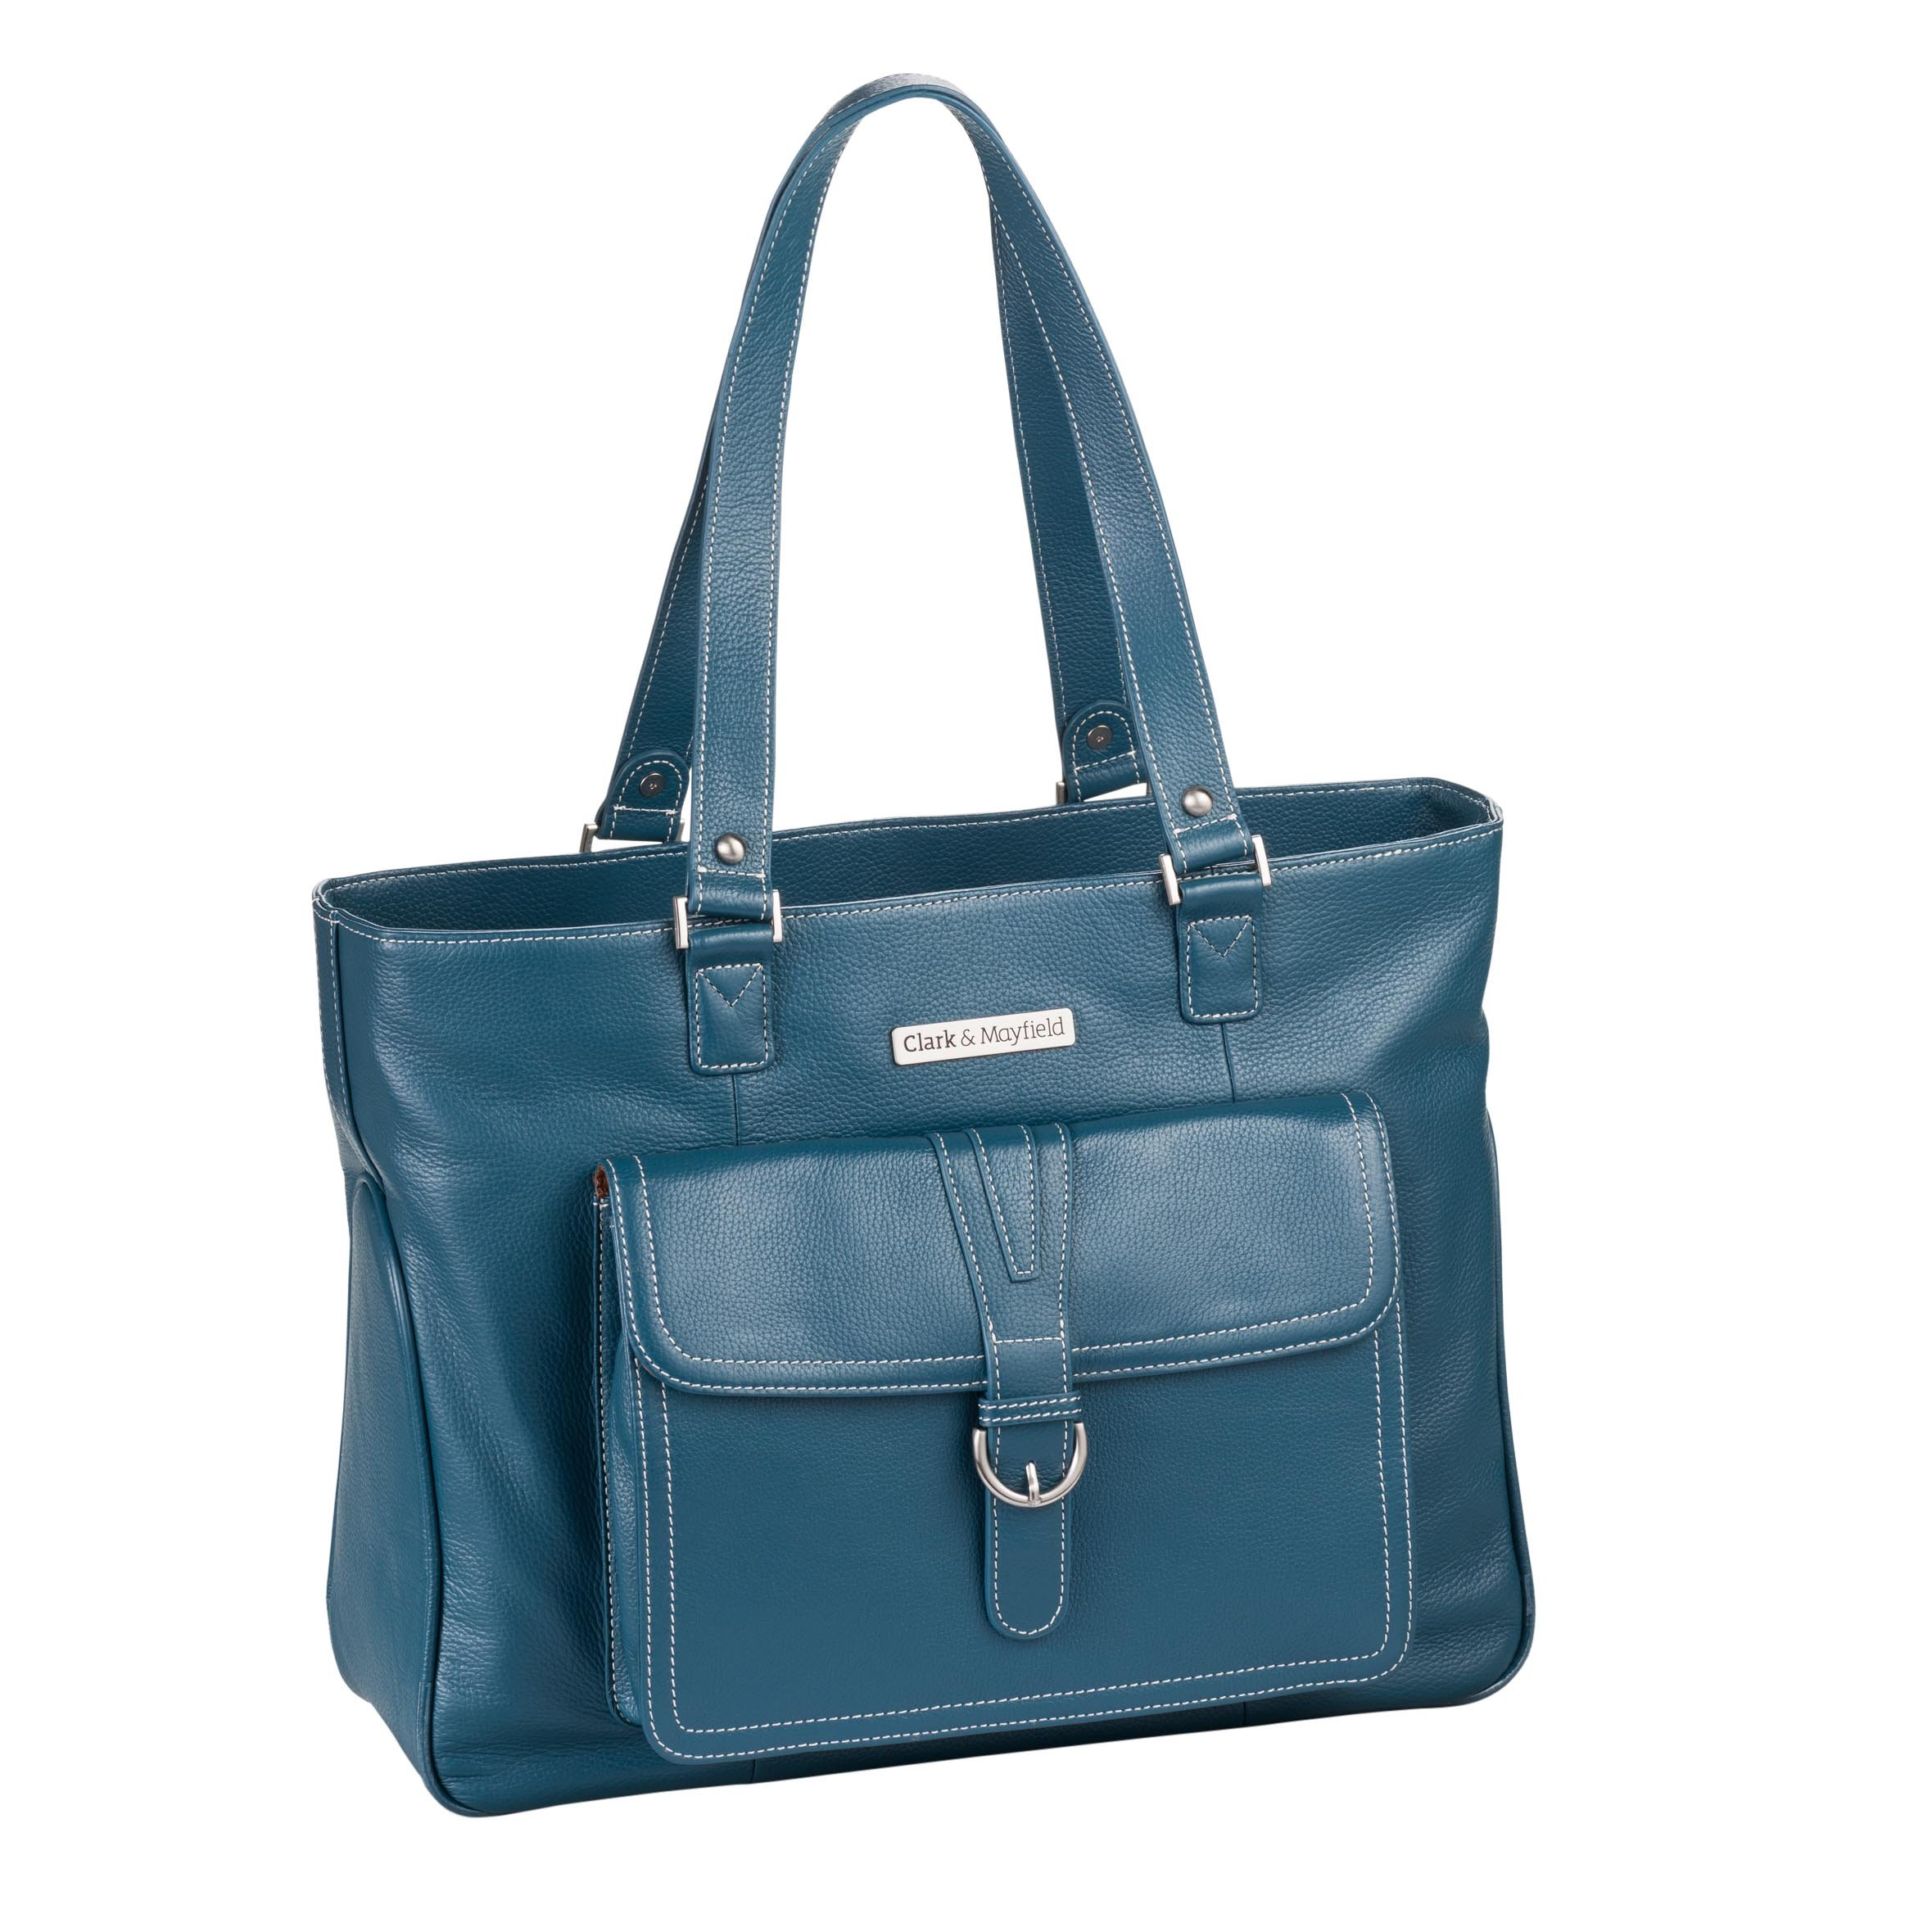 Clark & Mayfield Stafford Pro Leather Laptop Tote 17.3'' (Deep Teal)